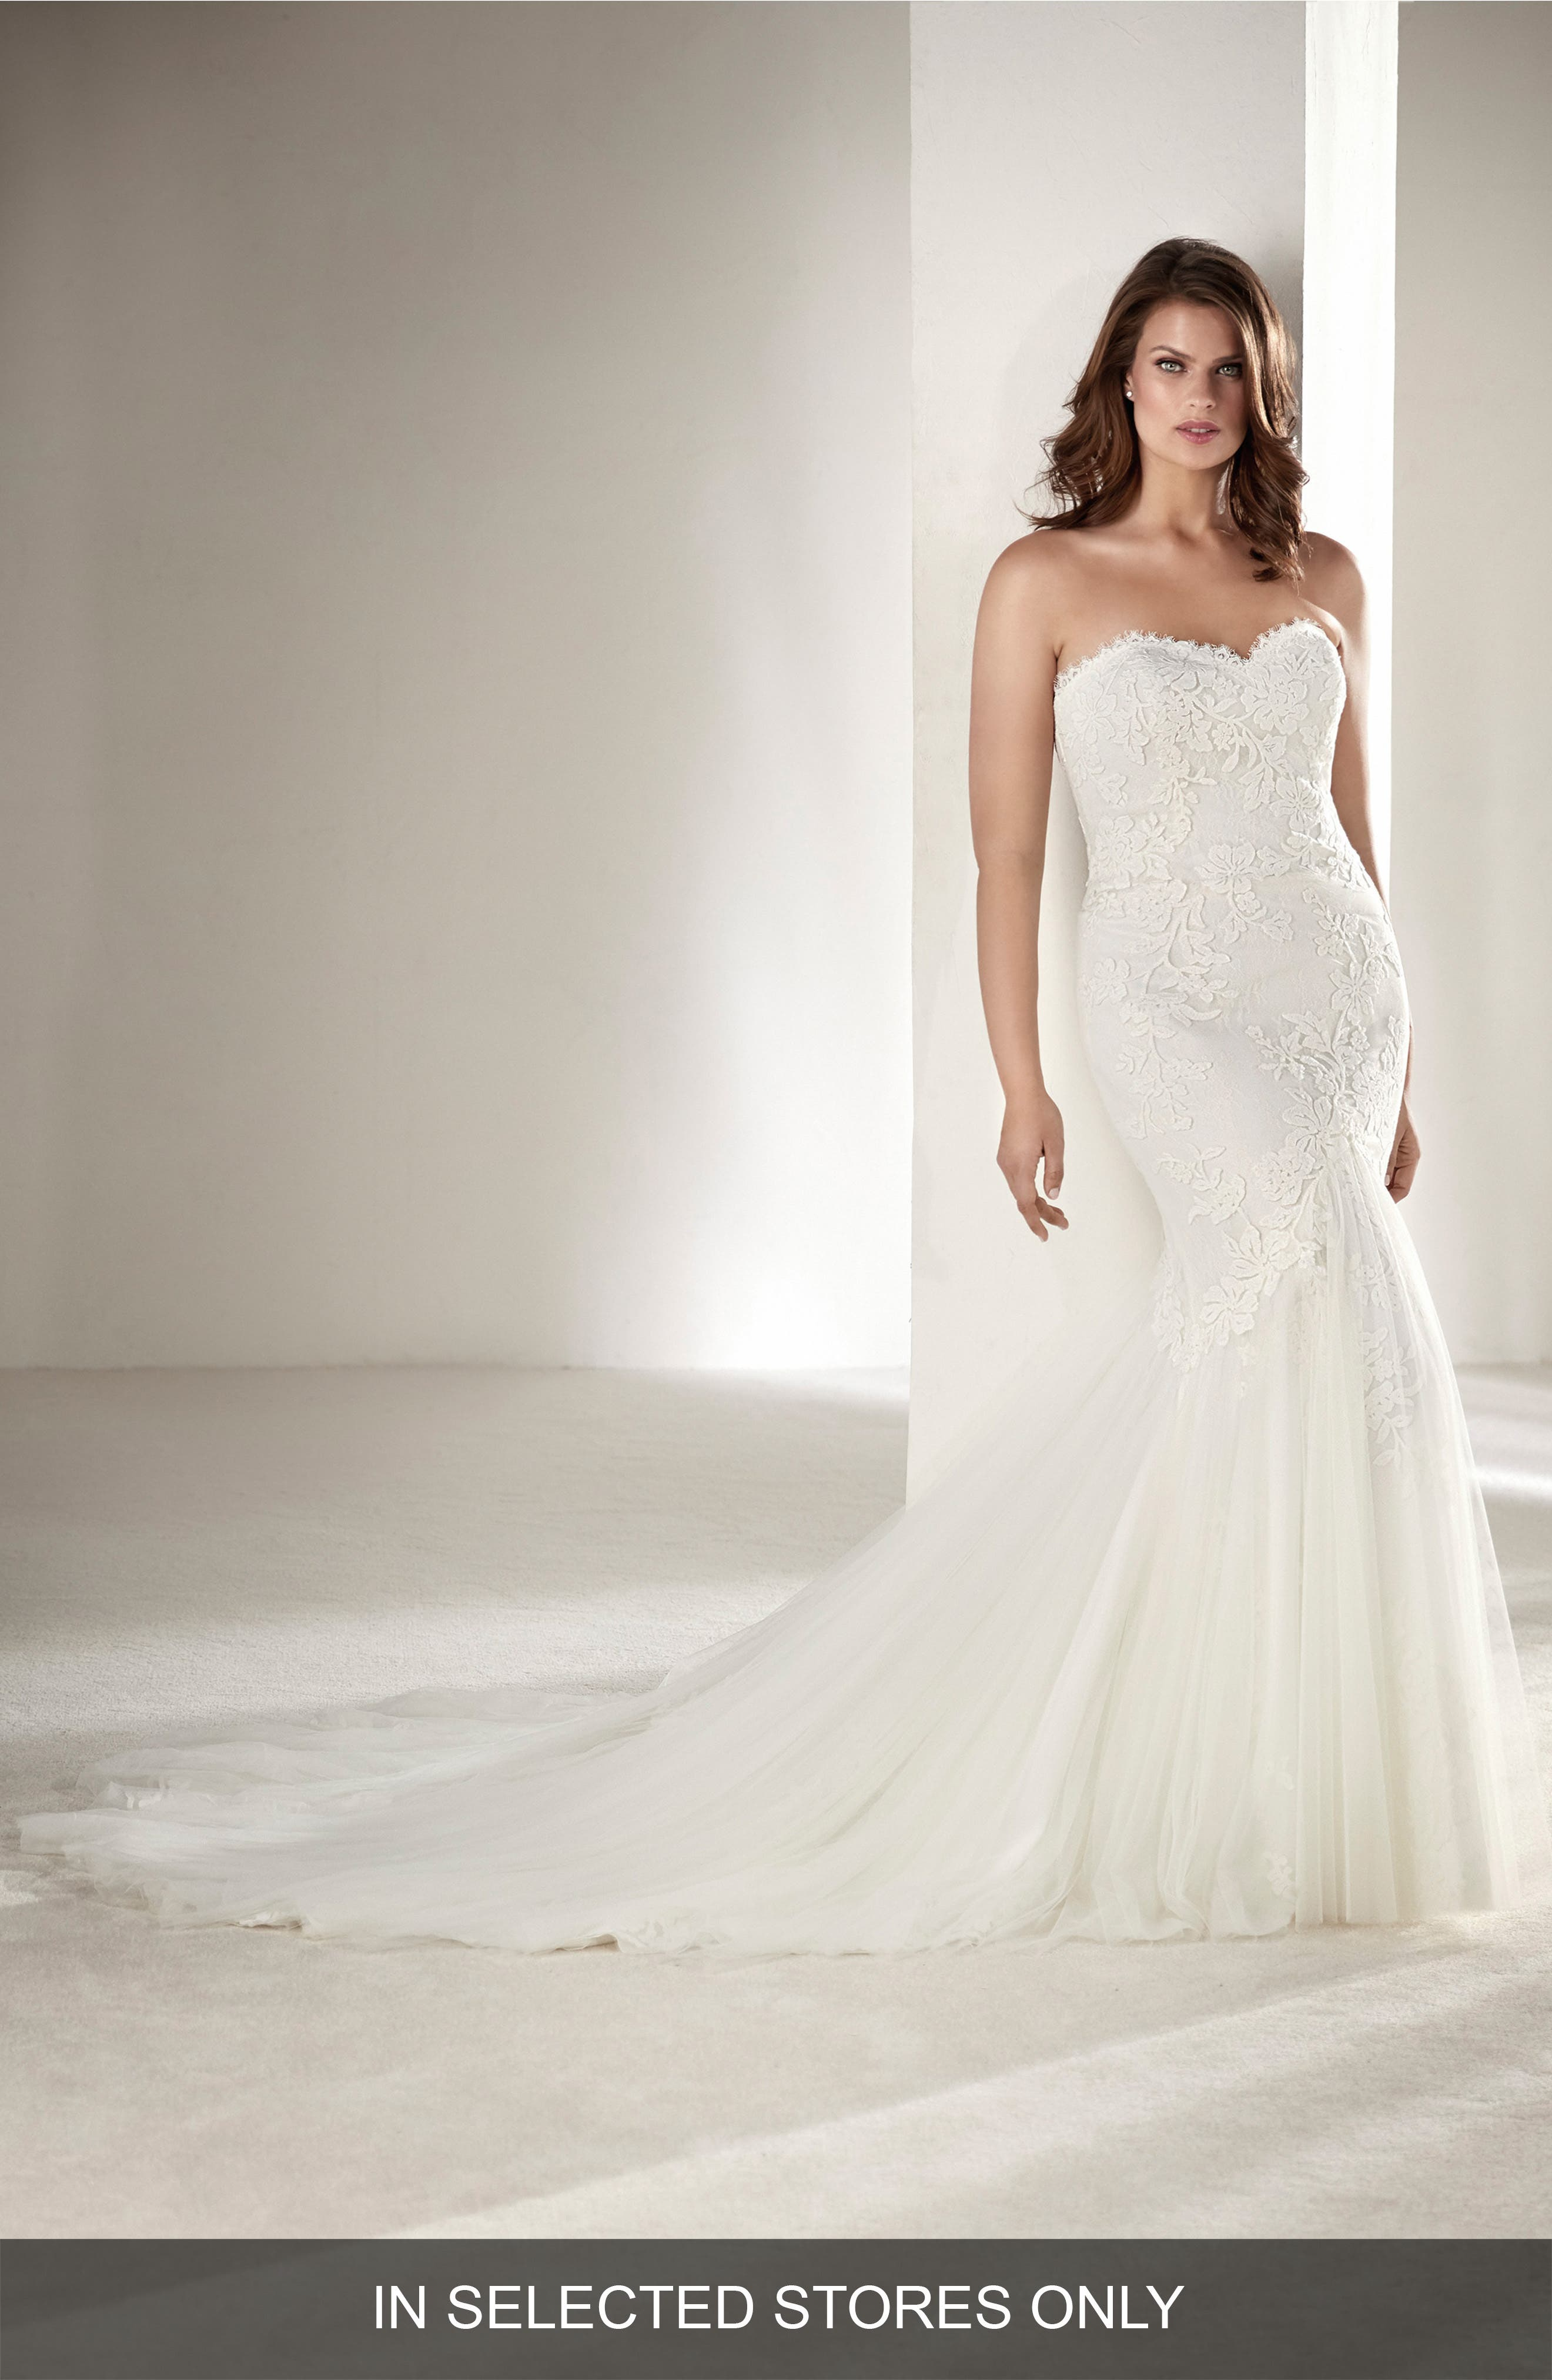 Drimea Strapless Mermaid Gown with Tulle Cape,                             Alternate thumbnail 3, color,                             Off White